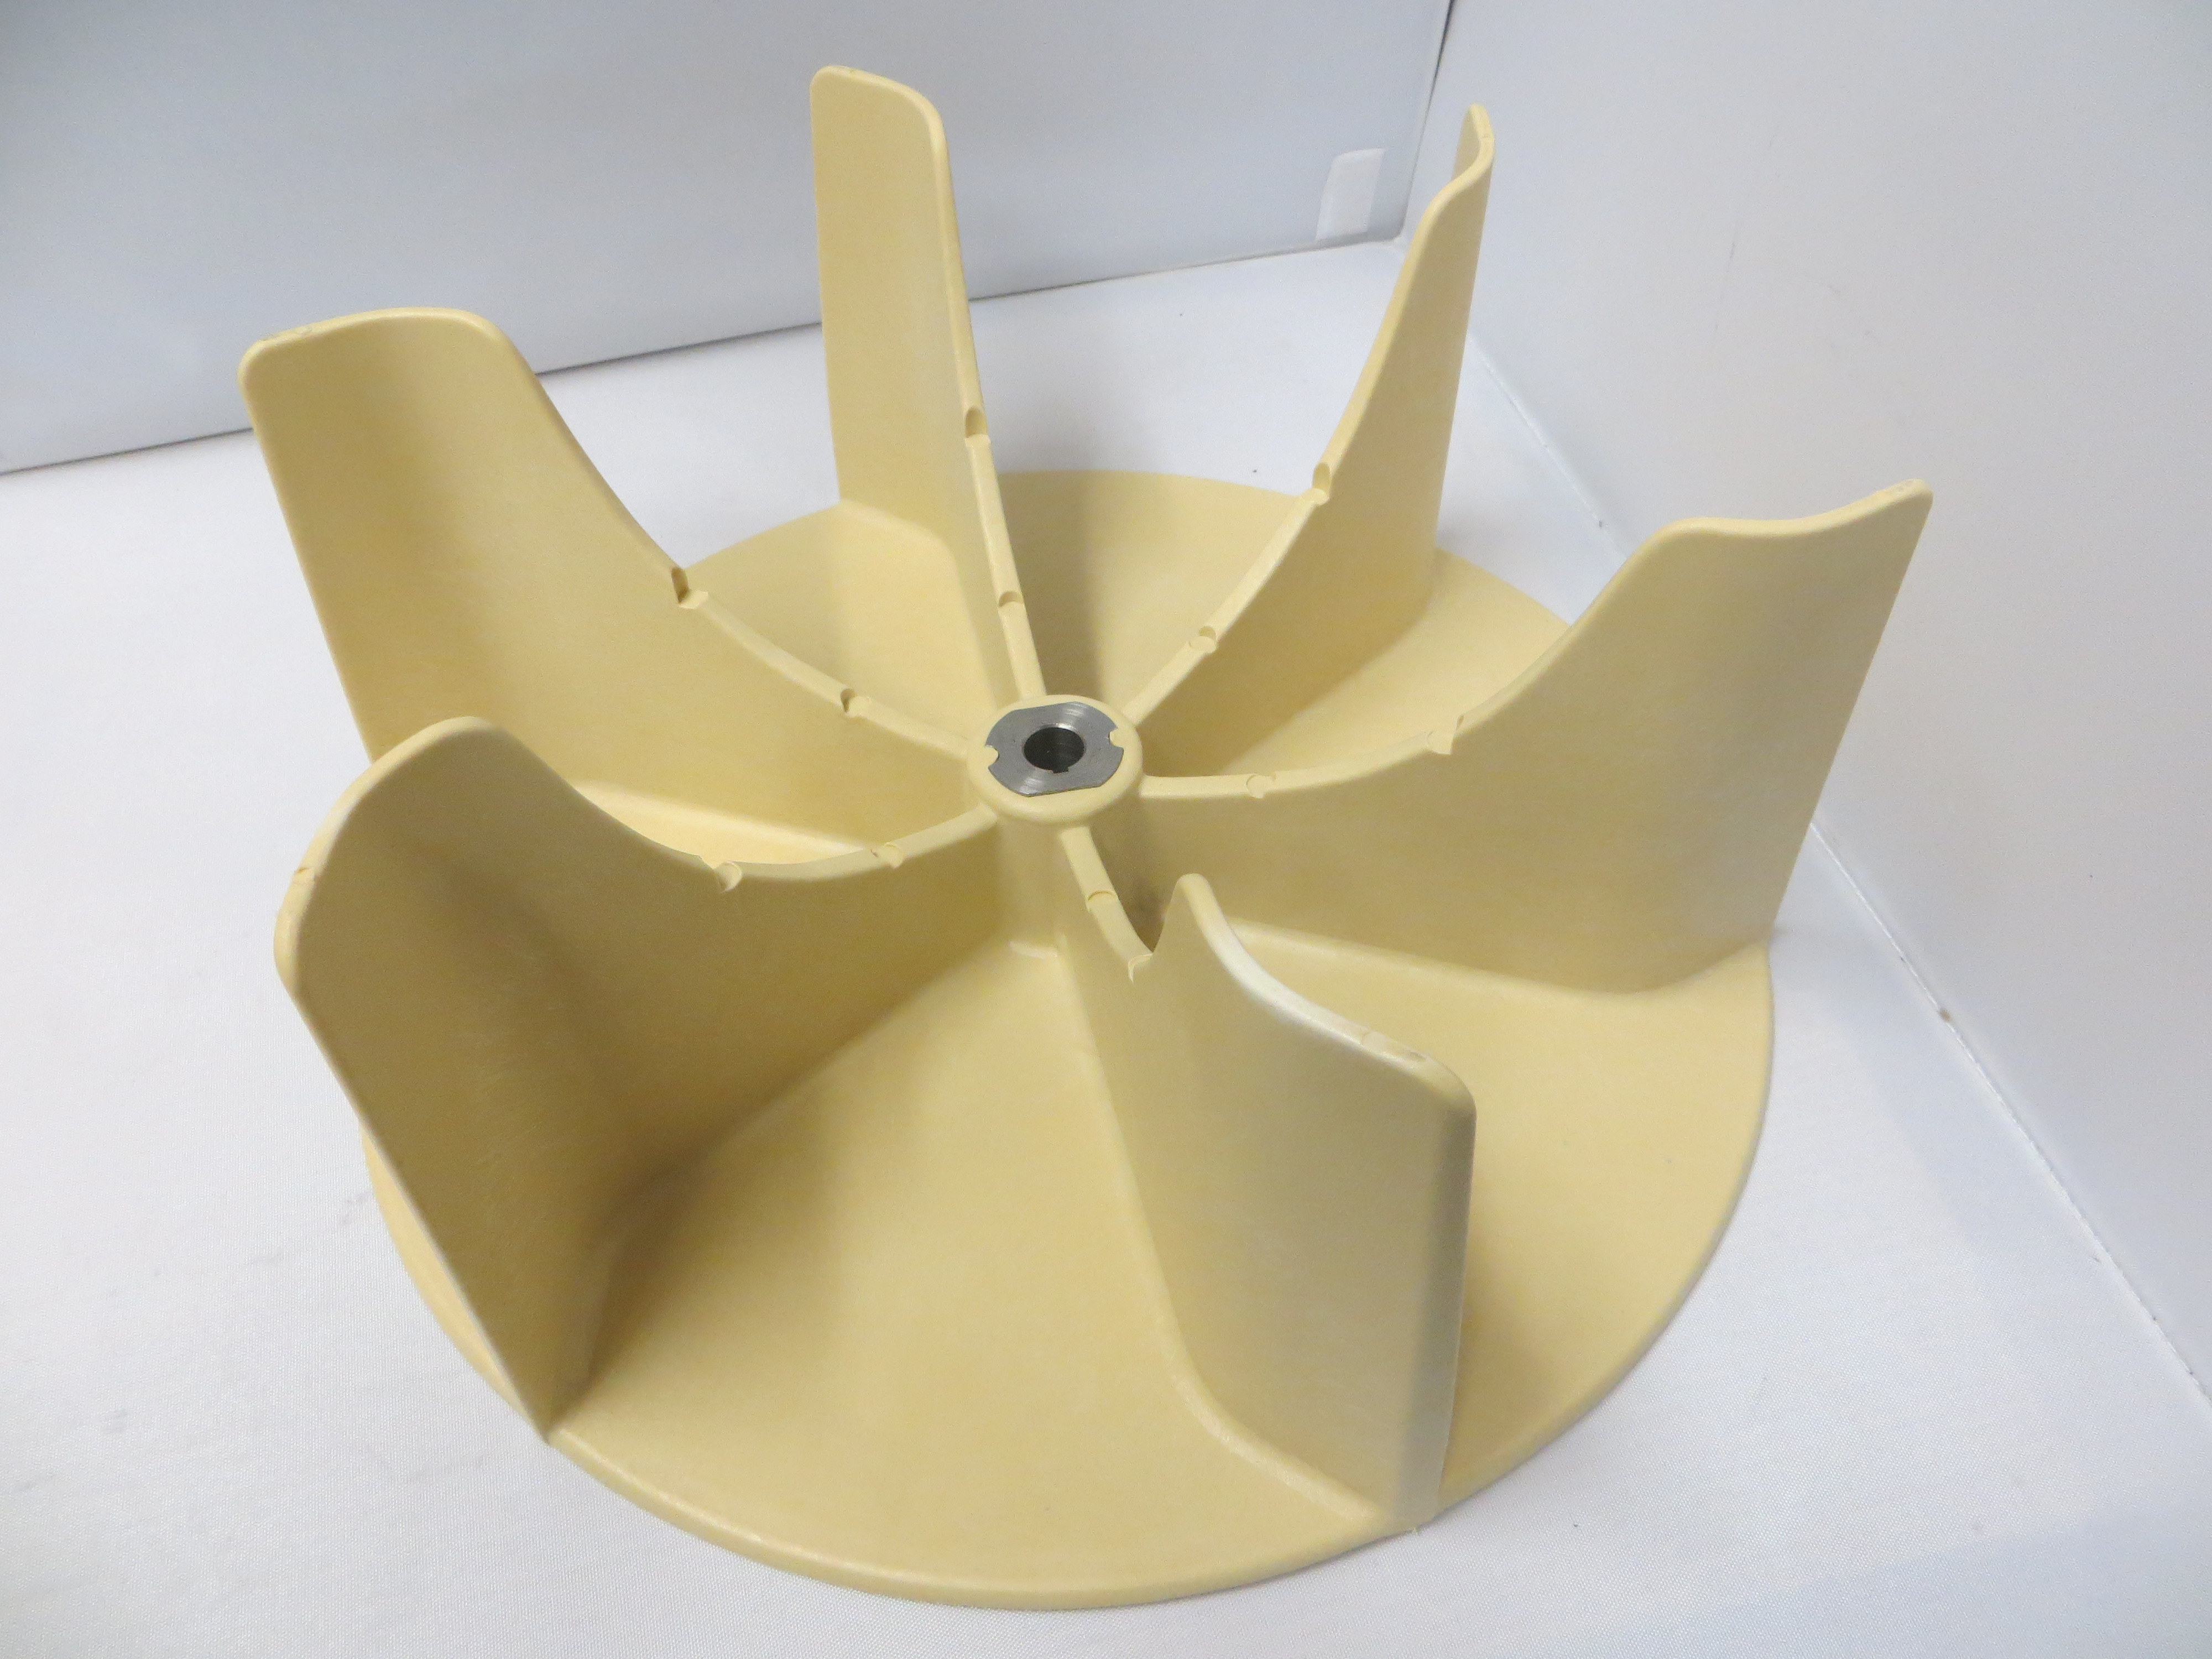 ADC Generic Impeller (Blower) Fan 12 1/2 With 1/2 Bore